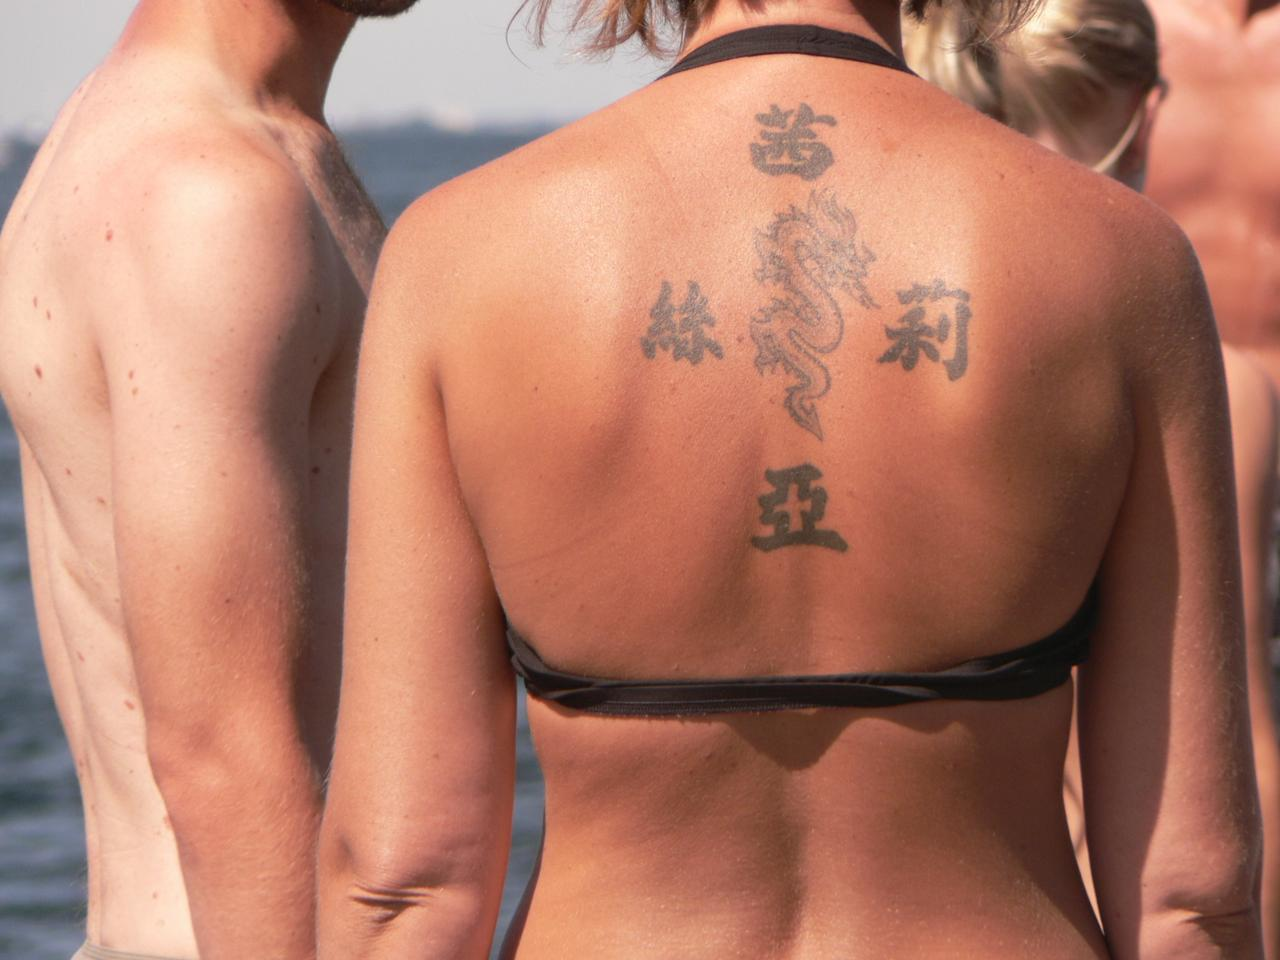 Make sure you know the actual meaning of your tattoo.